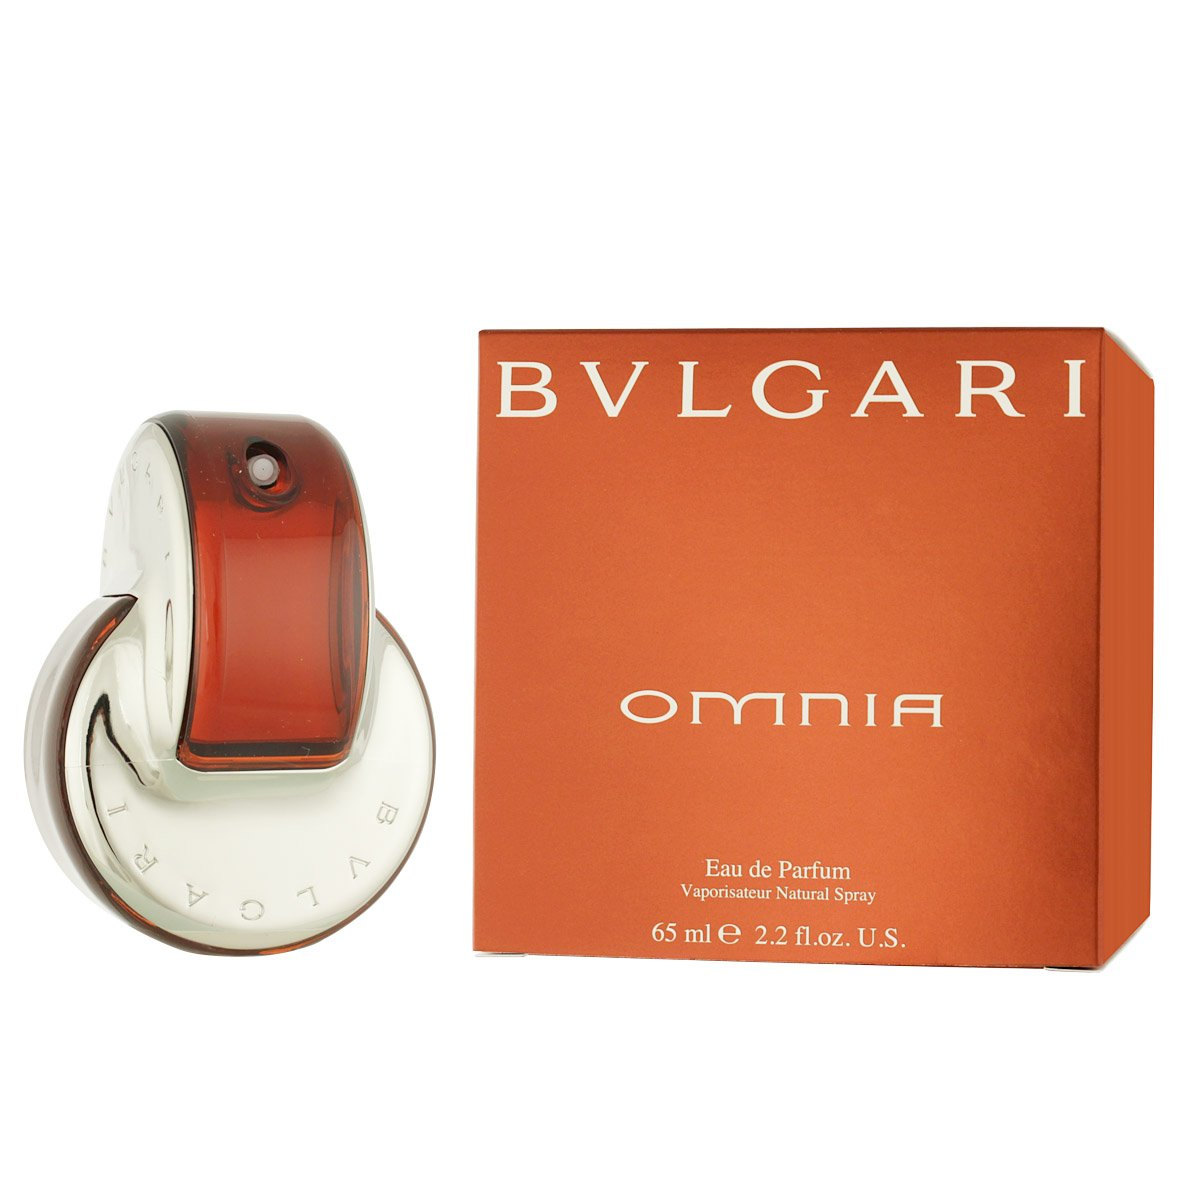 Bvlgari Omnia Eau de Parfum Spray for Women, 2.2 Ounce